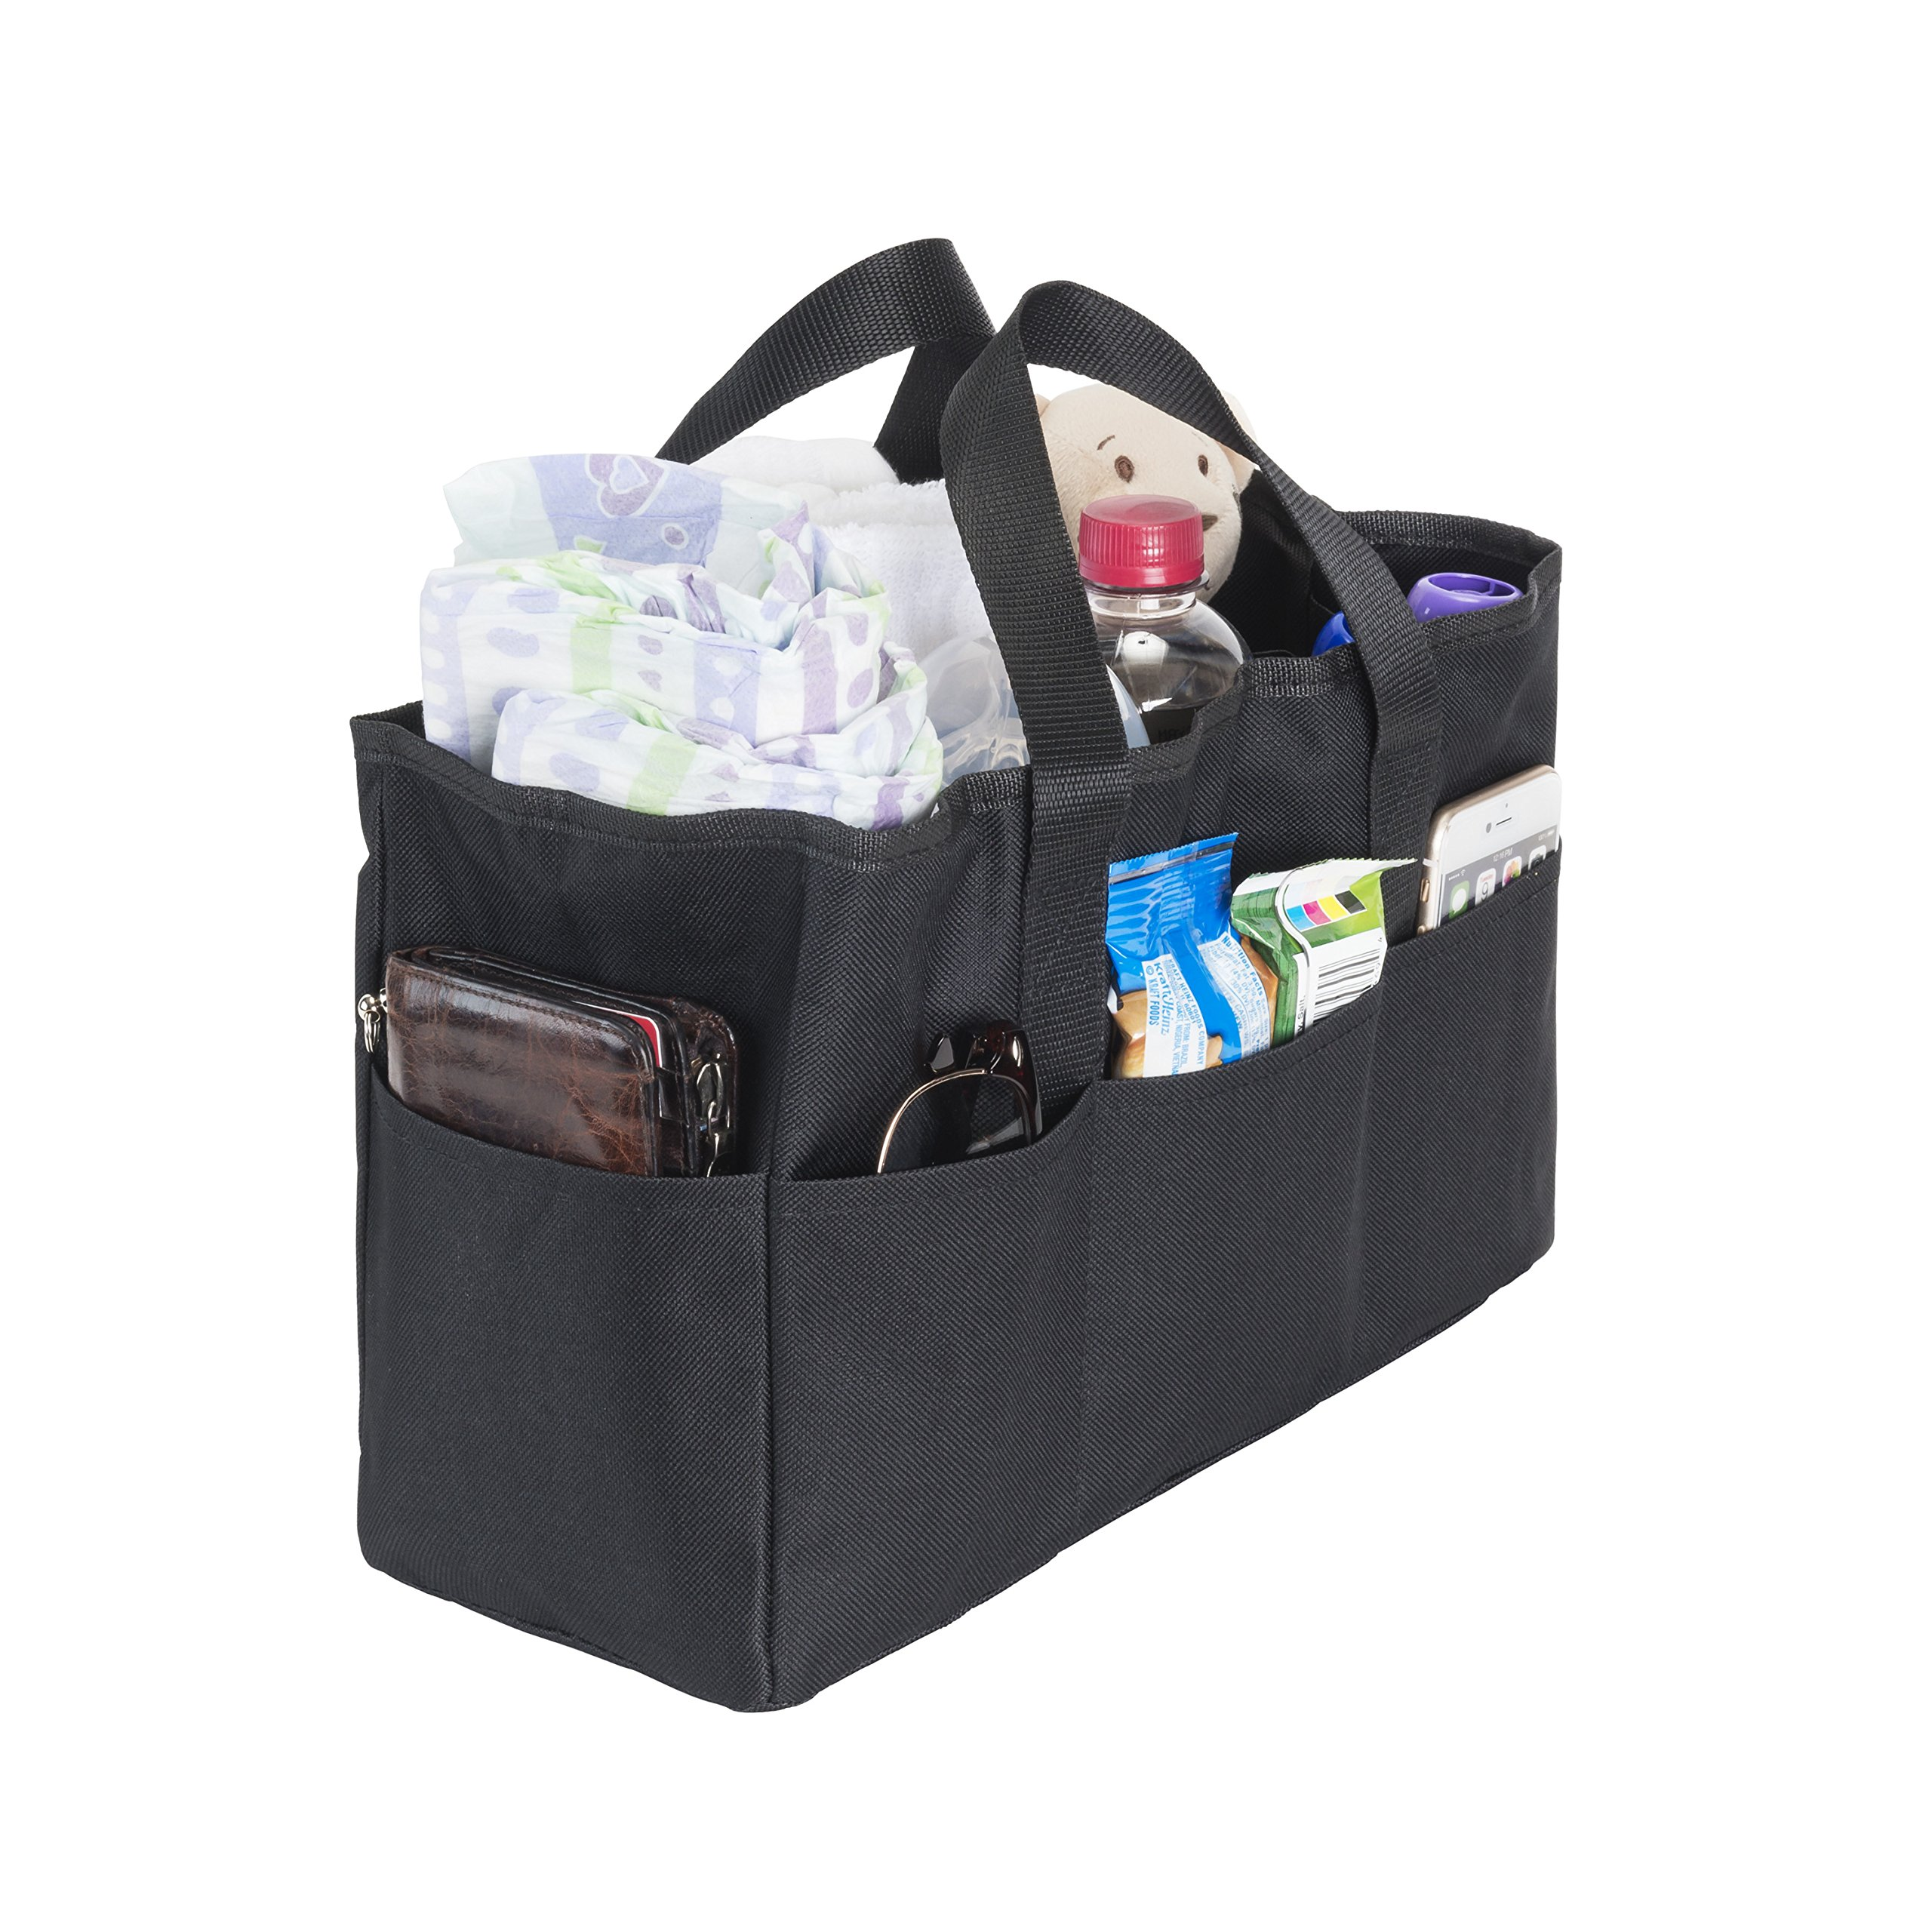 Diaper Bag Insert Organizer for Mom with 5 Outside & 6 Inside Storage Pockets - Transform Any Mom's Purse, Handbag, Backpack, Or Tote Bag by Mommy Knows Best (Image #1)